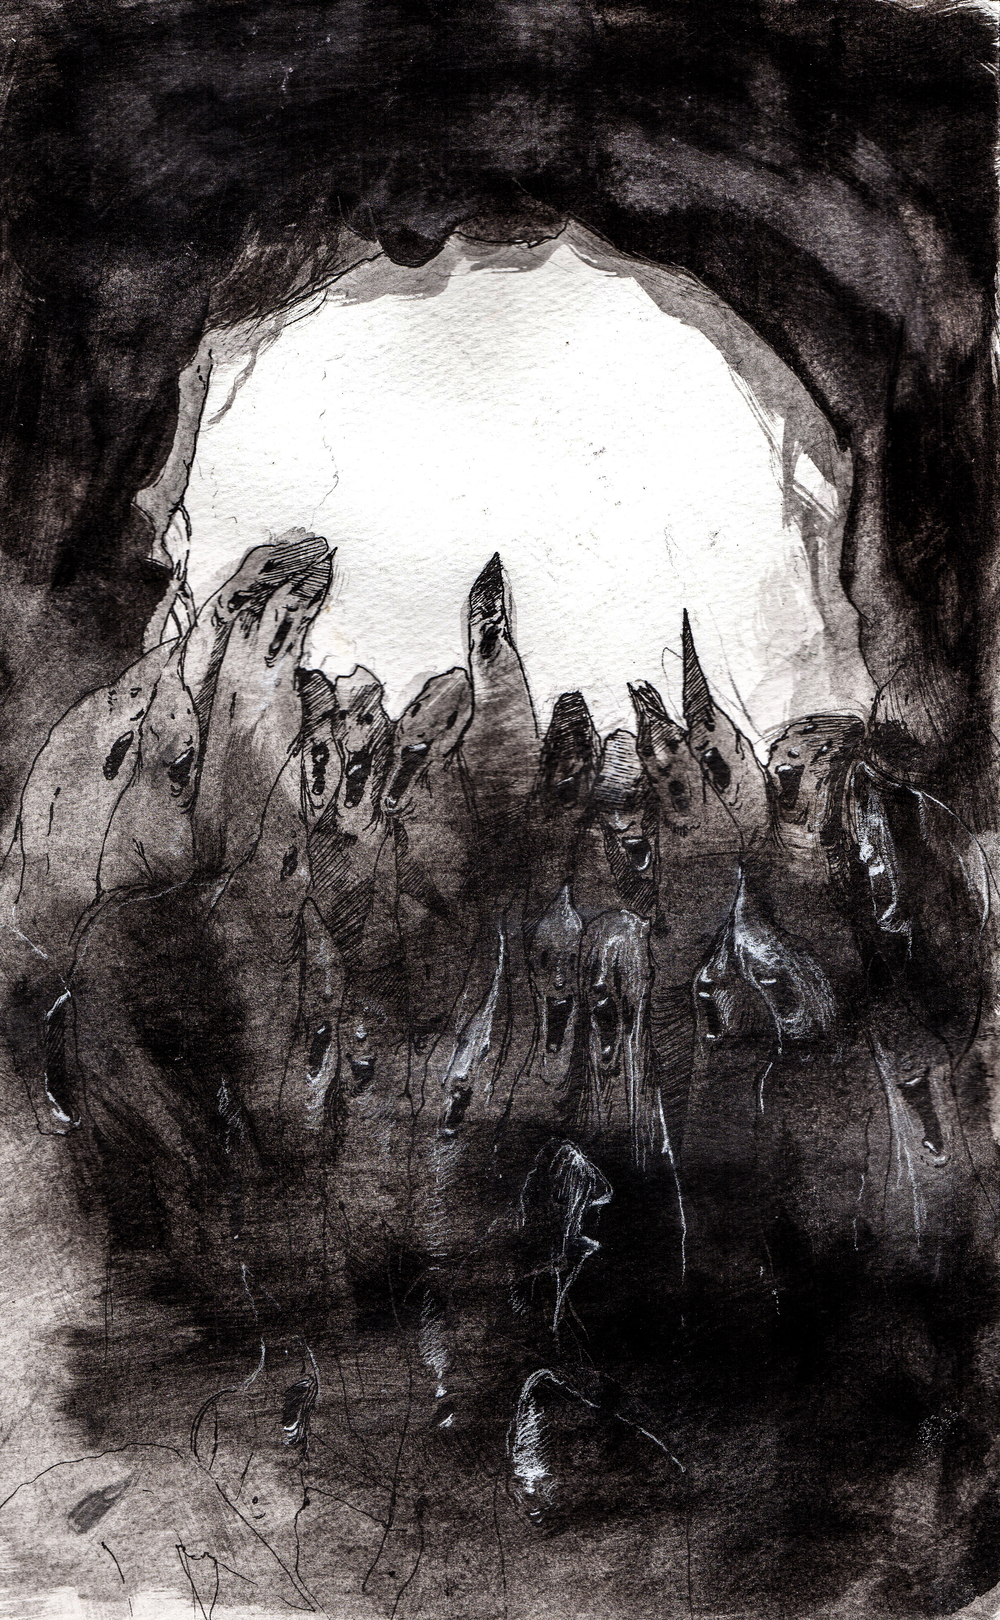 The light wholly consumes  . 2013. 10 x 15 inches. Ink wash on paper.